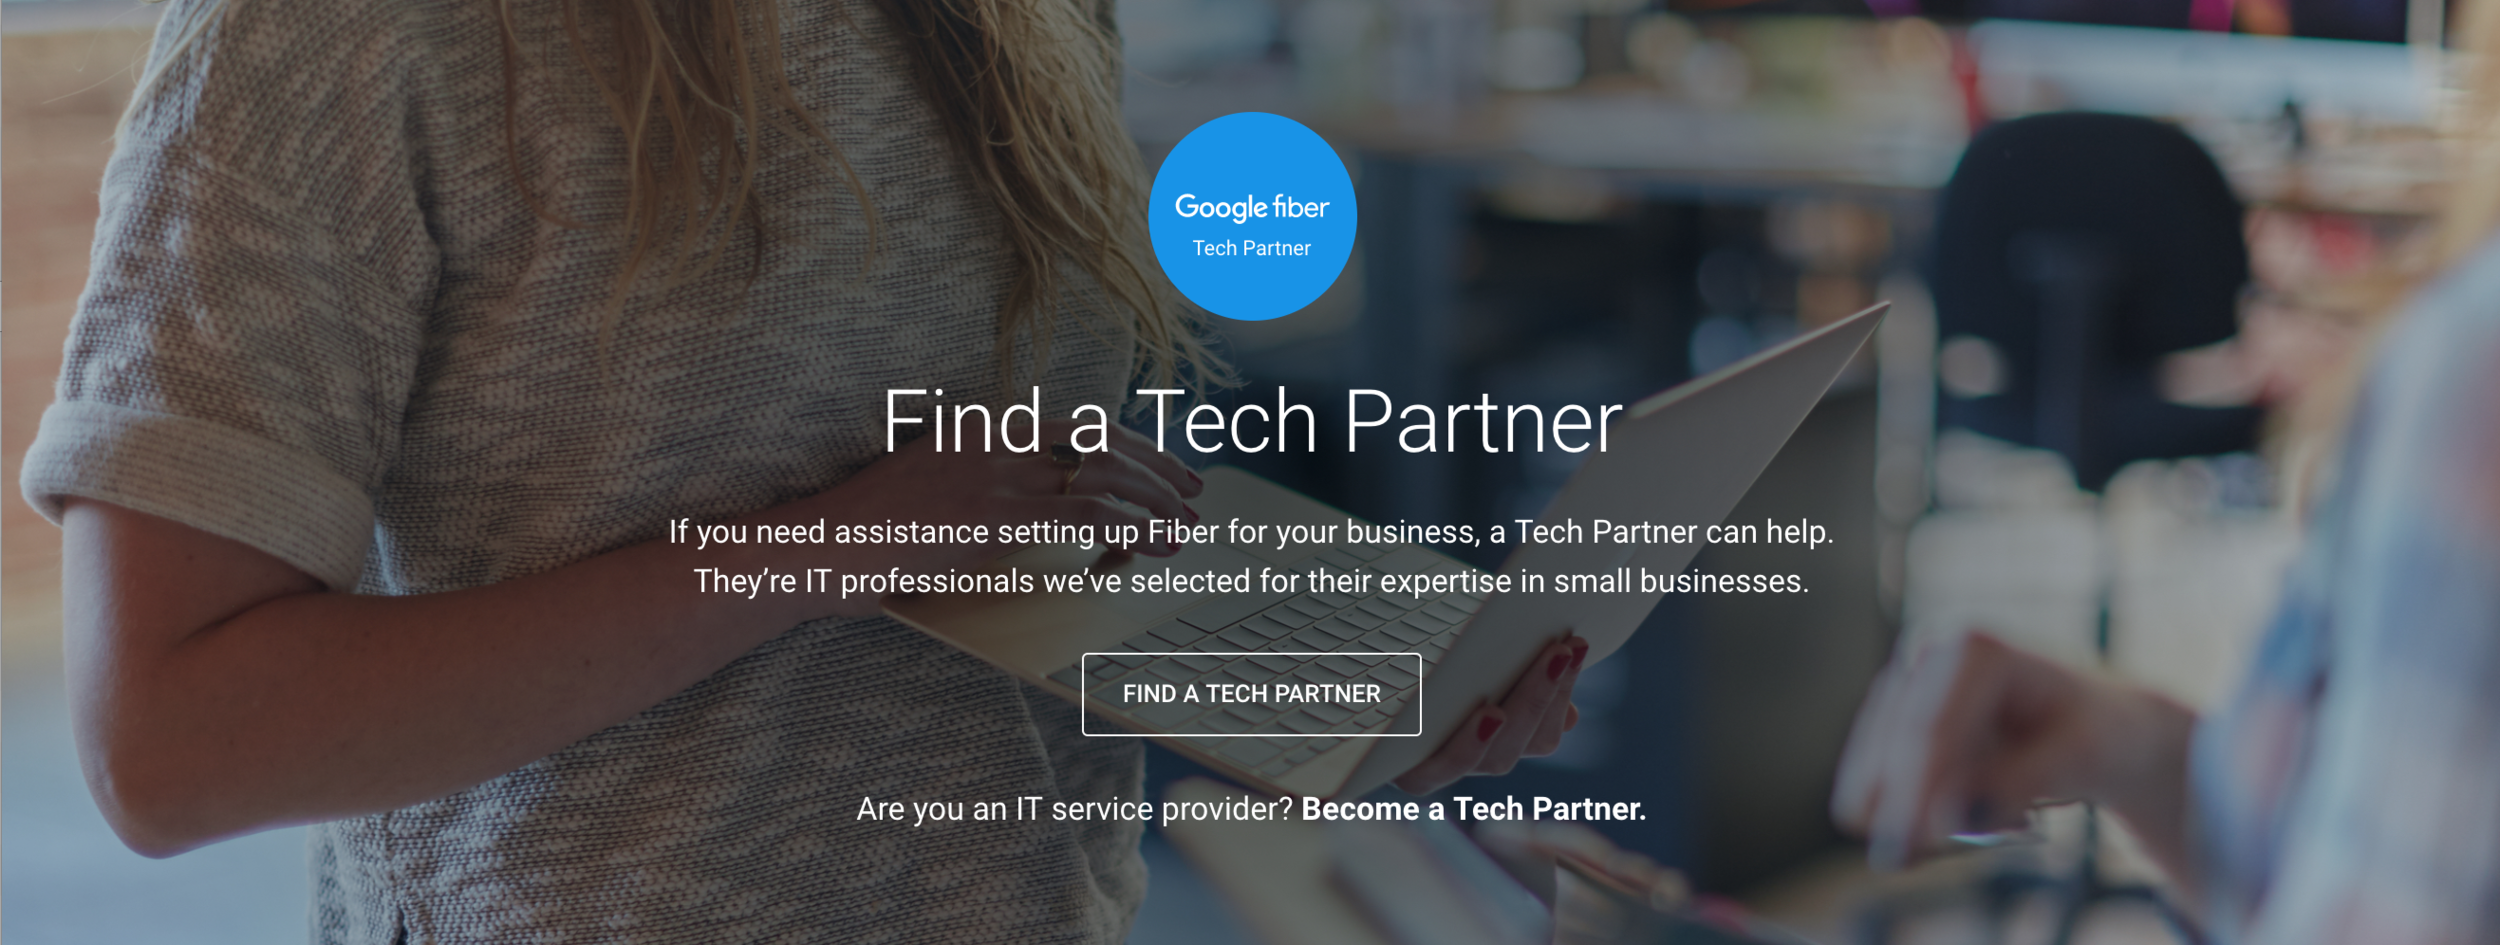 Tech partner_interstitial